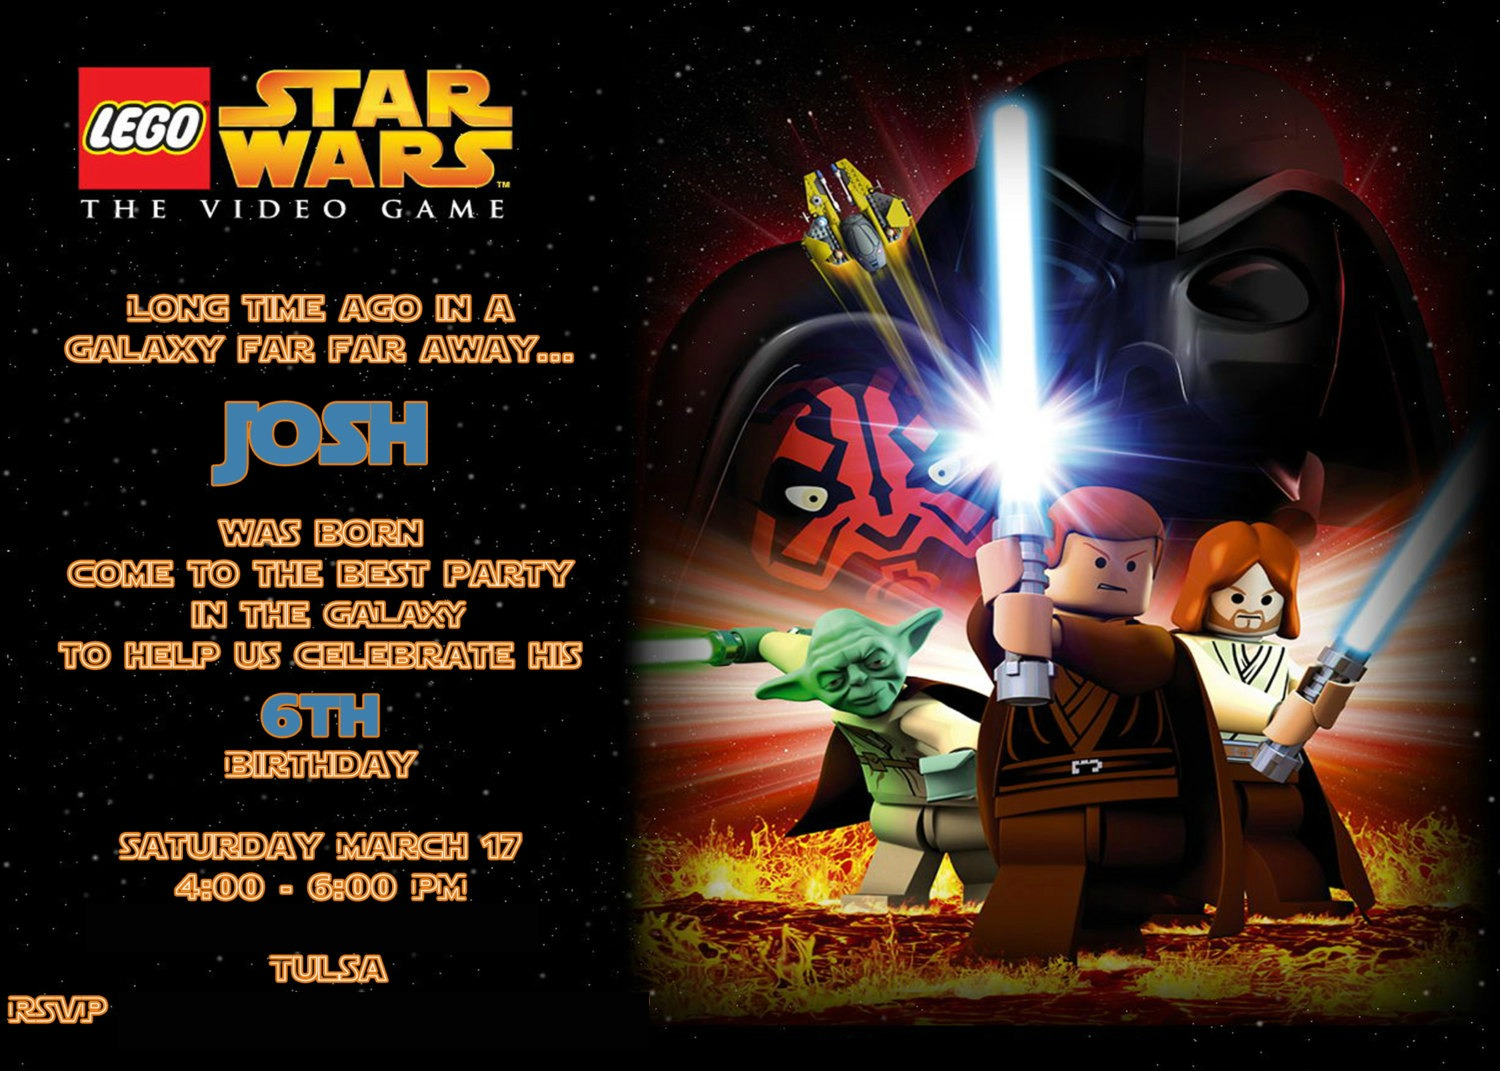 BubbaChic: The Lego Star Wars Party (part one)